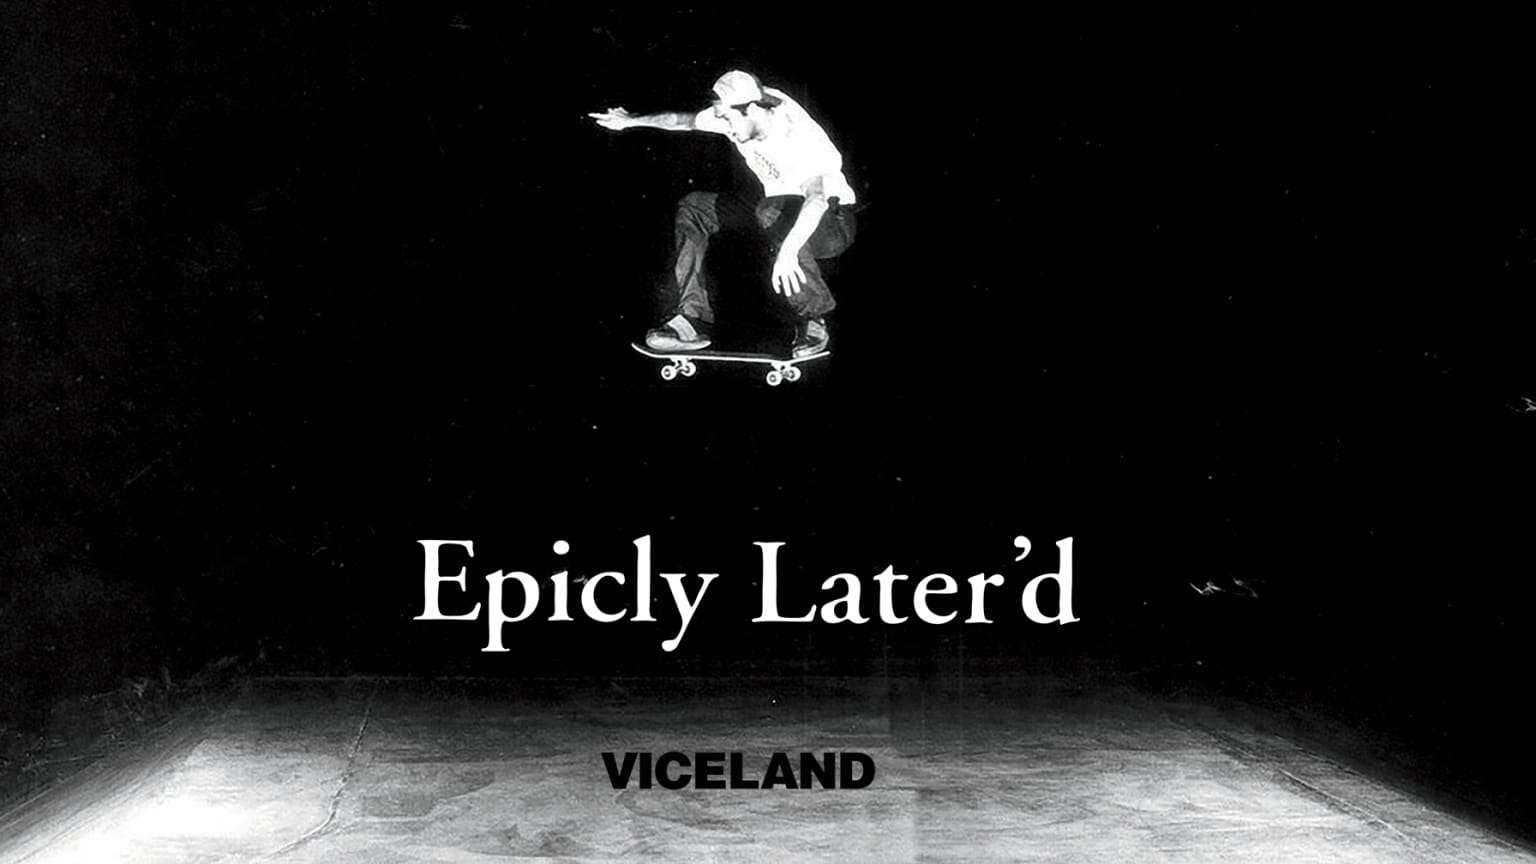 Epicly Later'd (Vice TV)